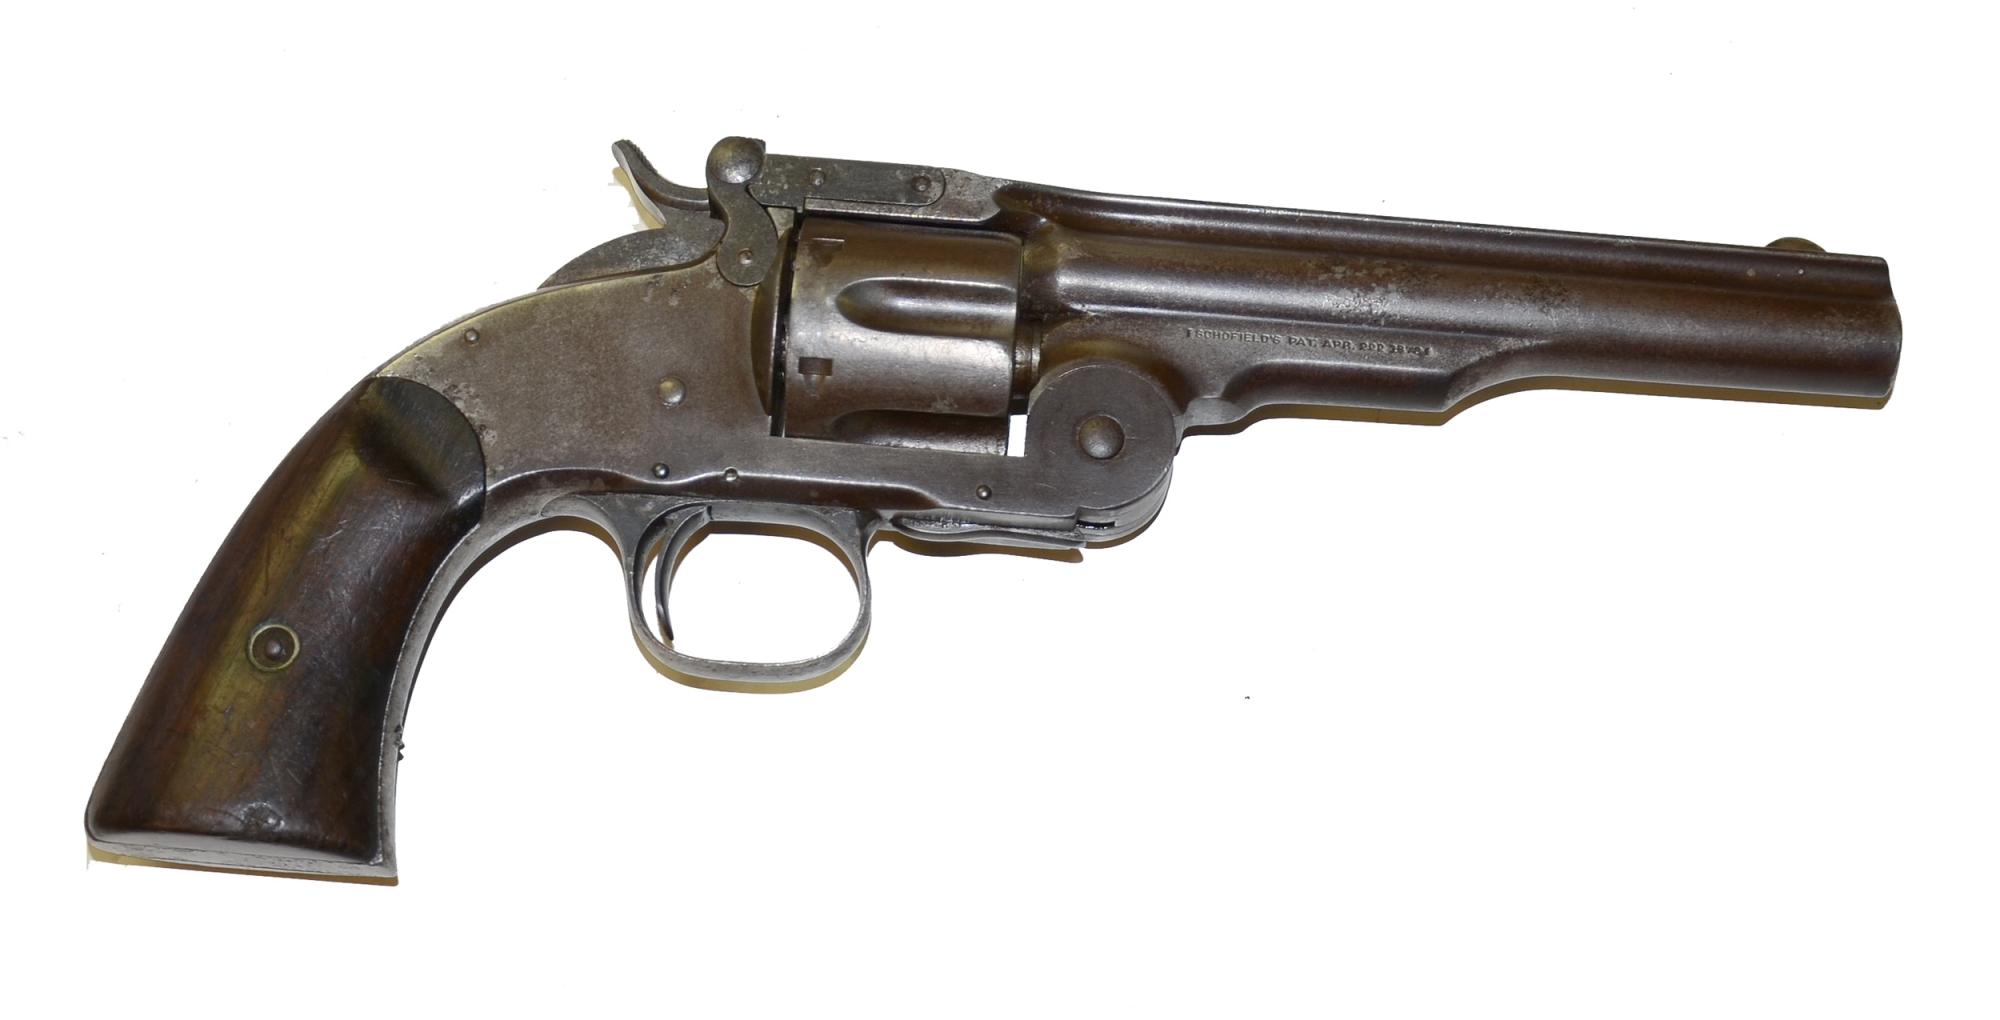 A SOLID SMITH & WESSON, SECOND MODEL SCHOFIELD.45 CALIBER SINGLE ACTION REVOLVER